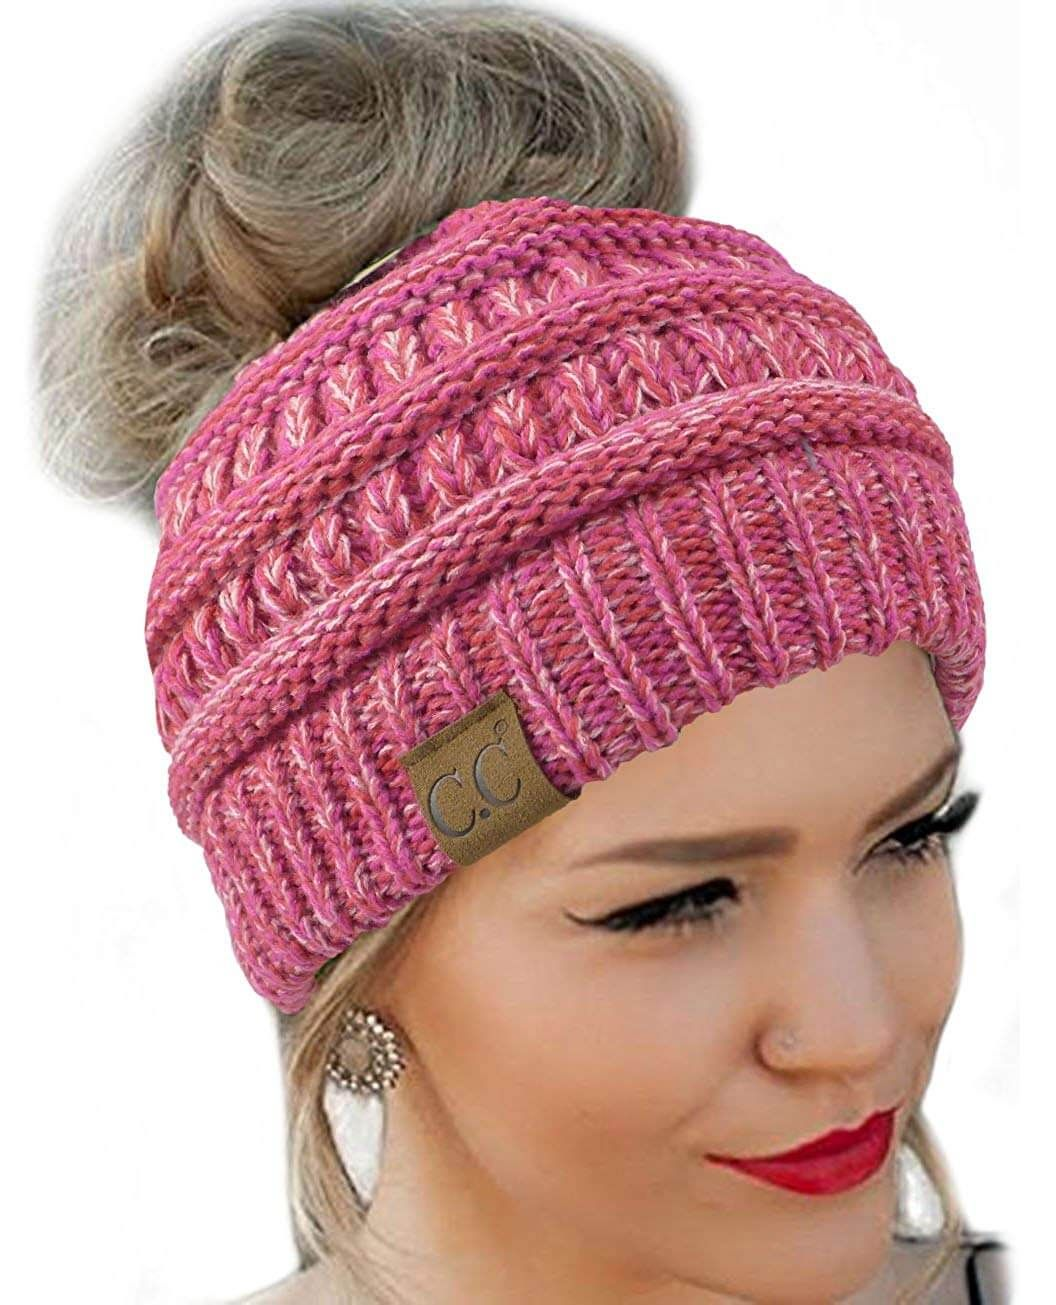 4f42cfe70c1 25 Cool Beanie Hats for Girls That Are Too Cute to Ignore ...